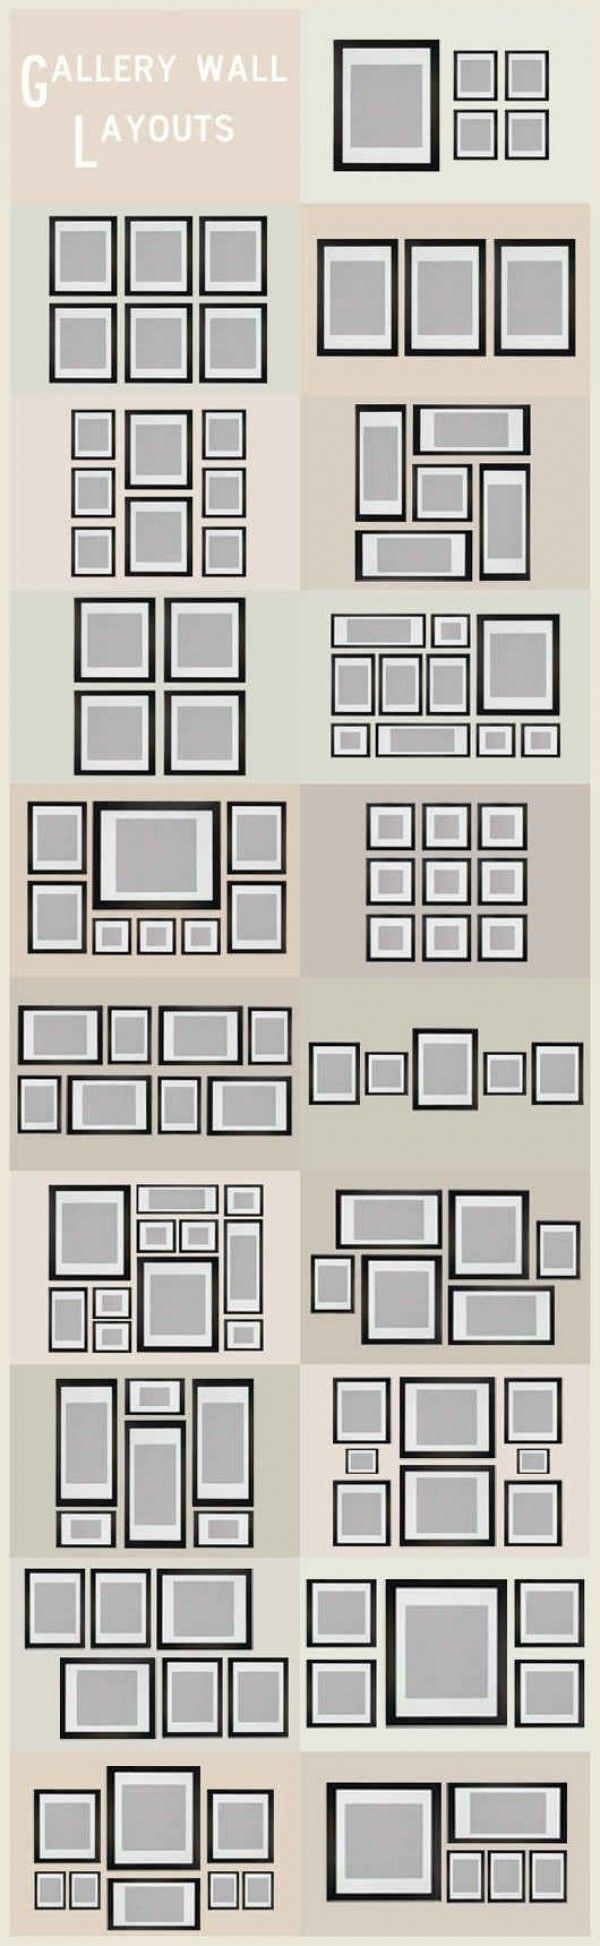 15 Home Decor Cheat Sheets That Will Have You Decorate Like a Pro   Industry Standard Design